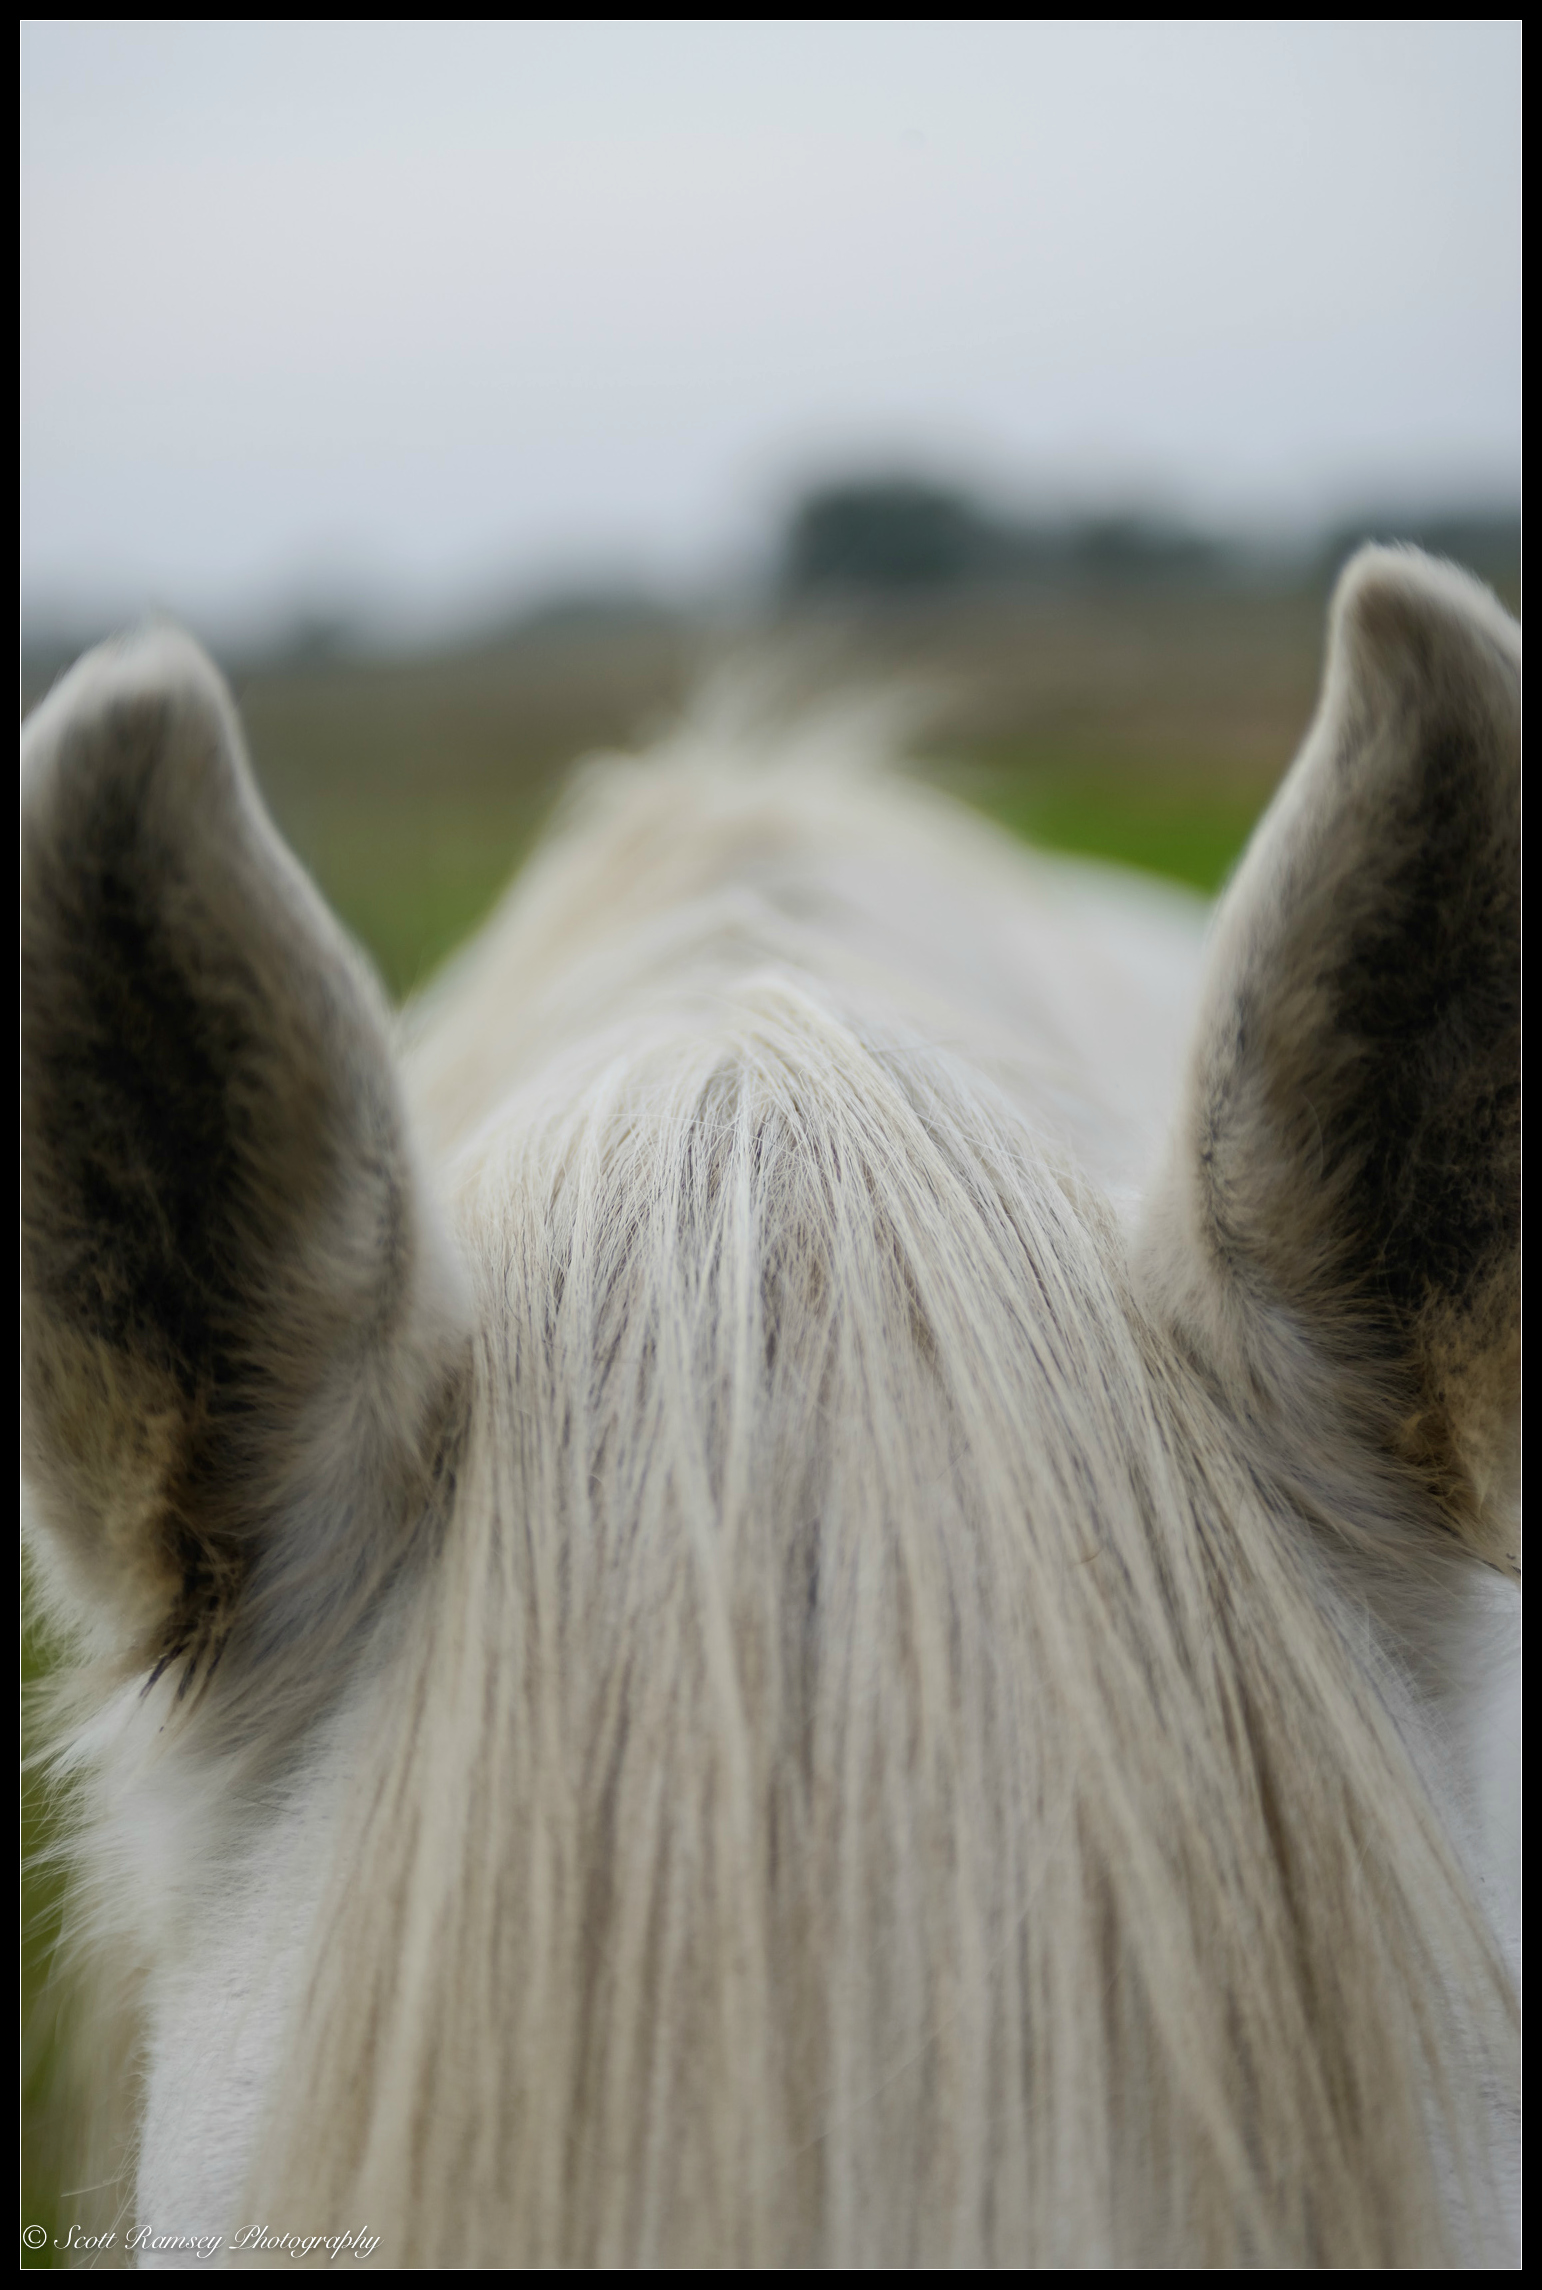 A horses ears Photo © Scott Ramsey